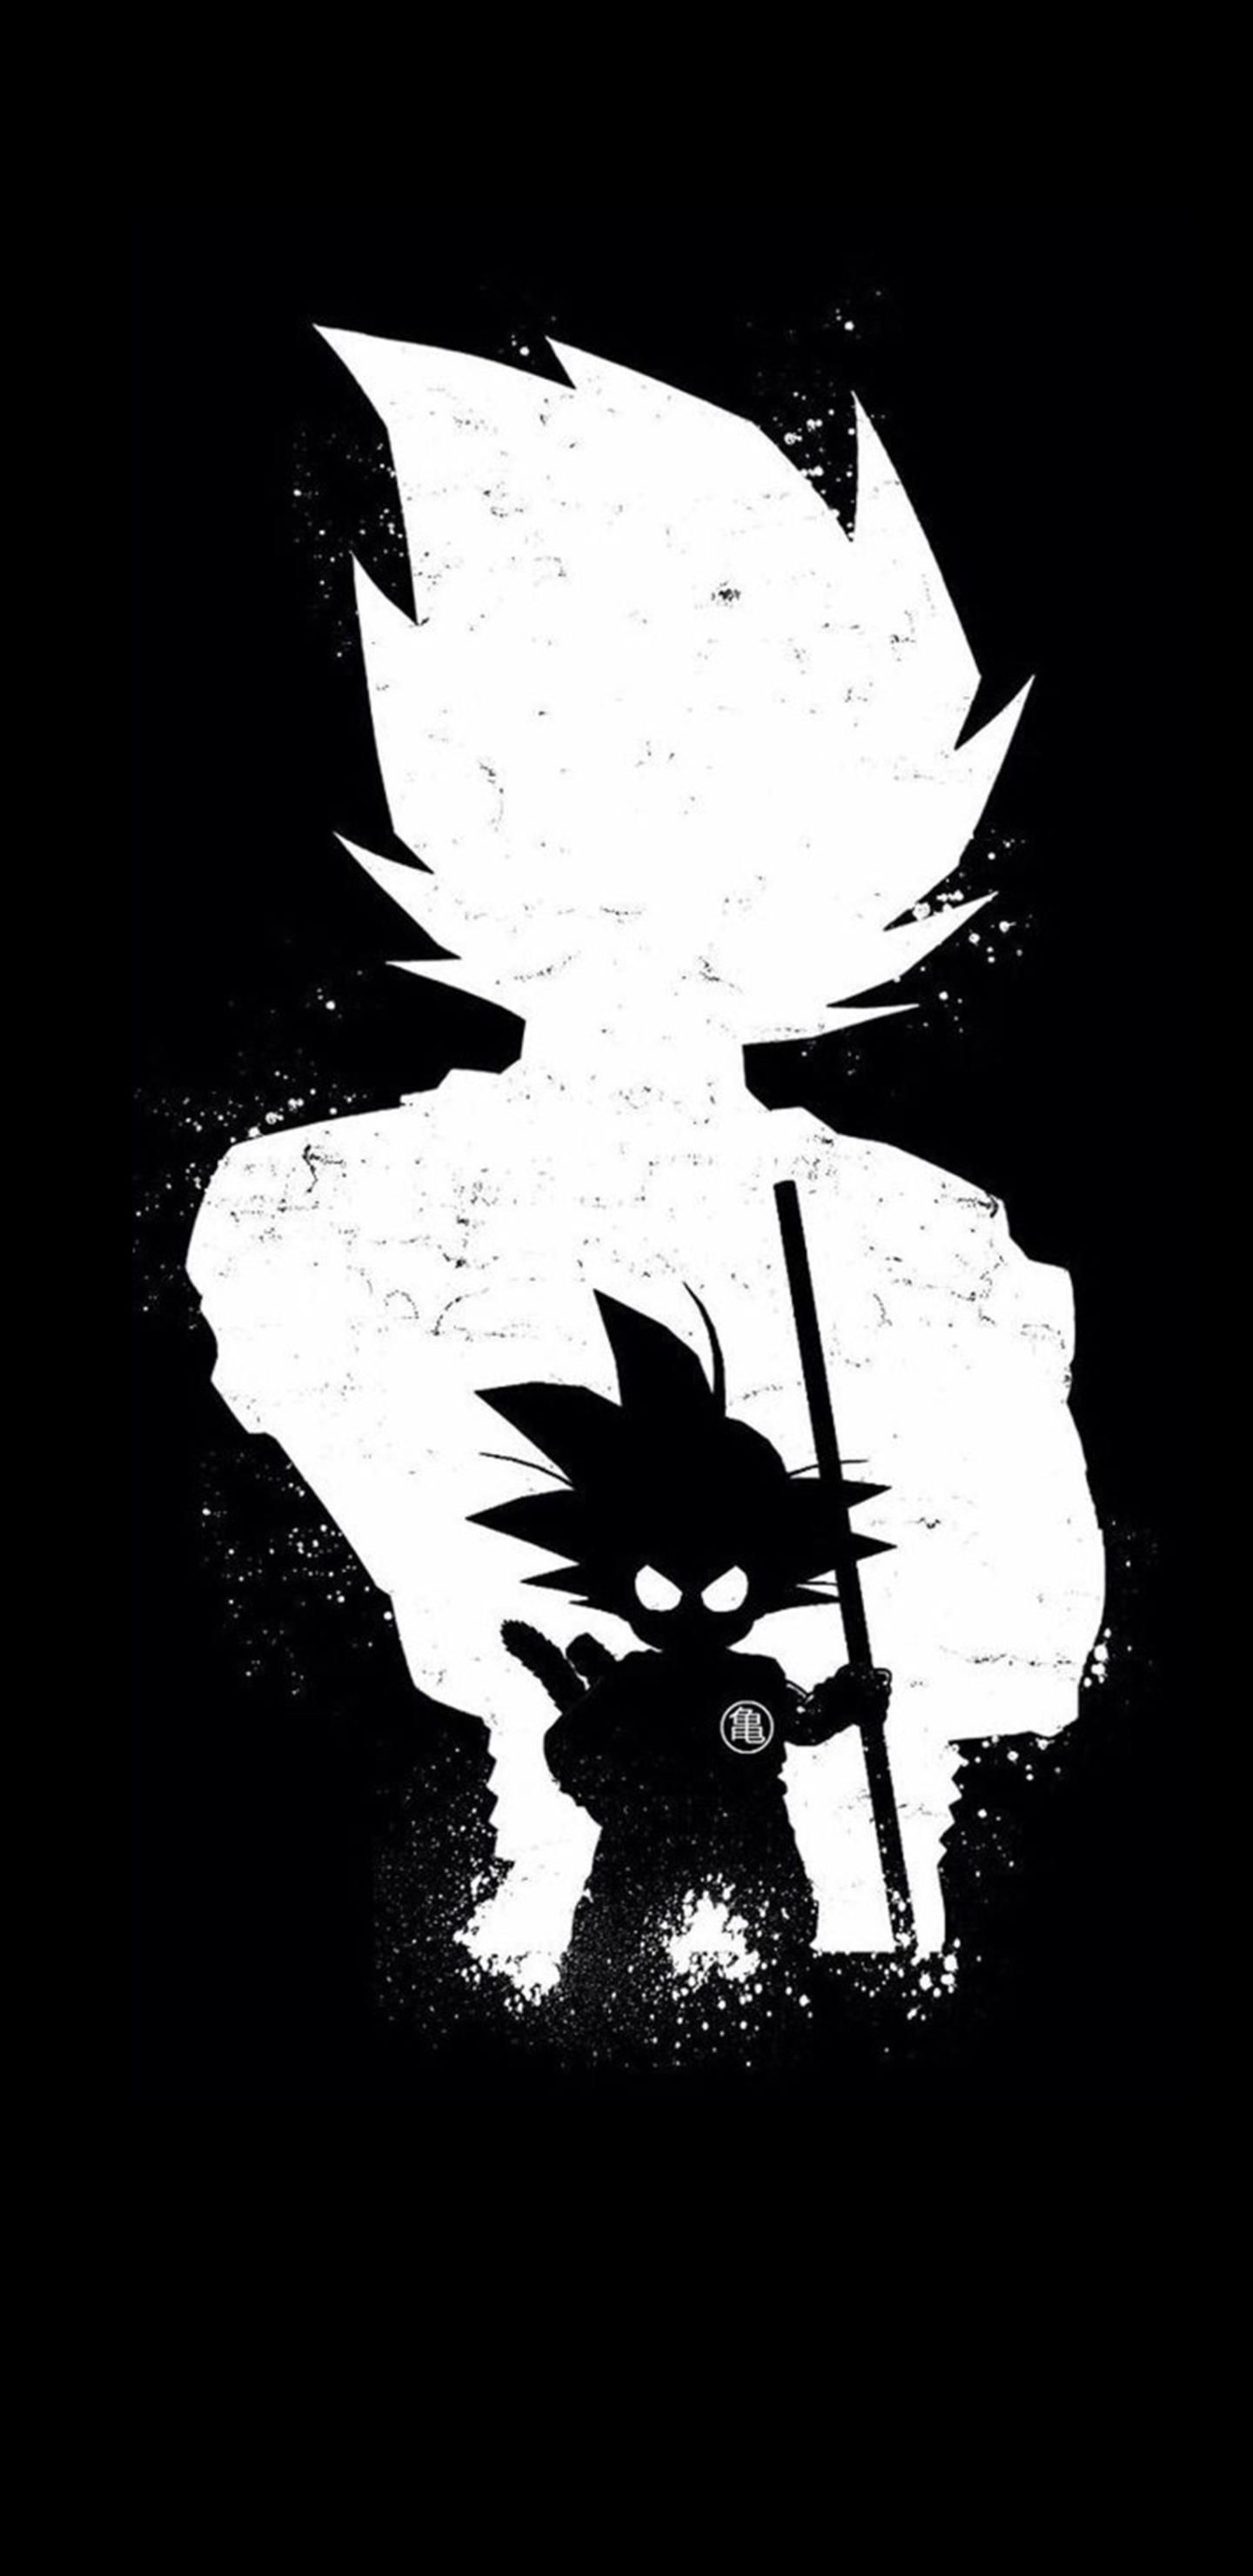 1440x2960 Goku Anime Dark Black 4k Samsung Galaxy Note 9 8 S9 S8